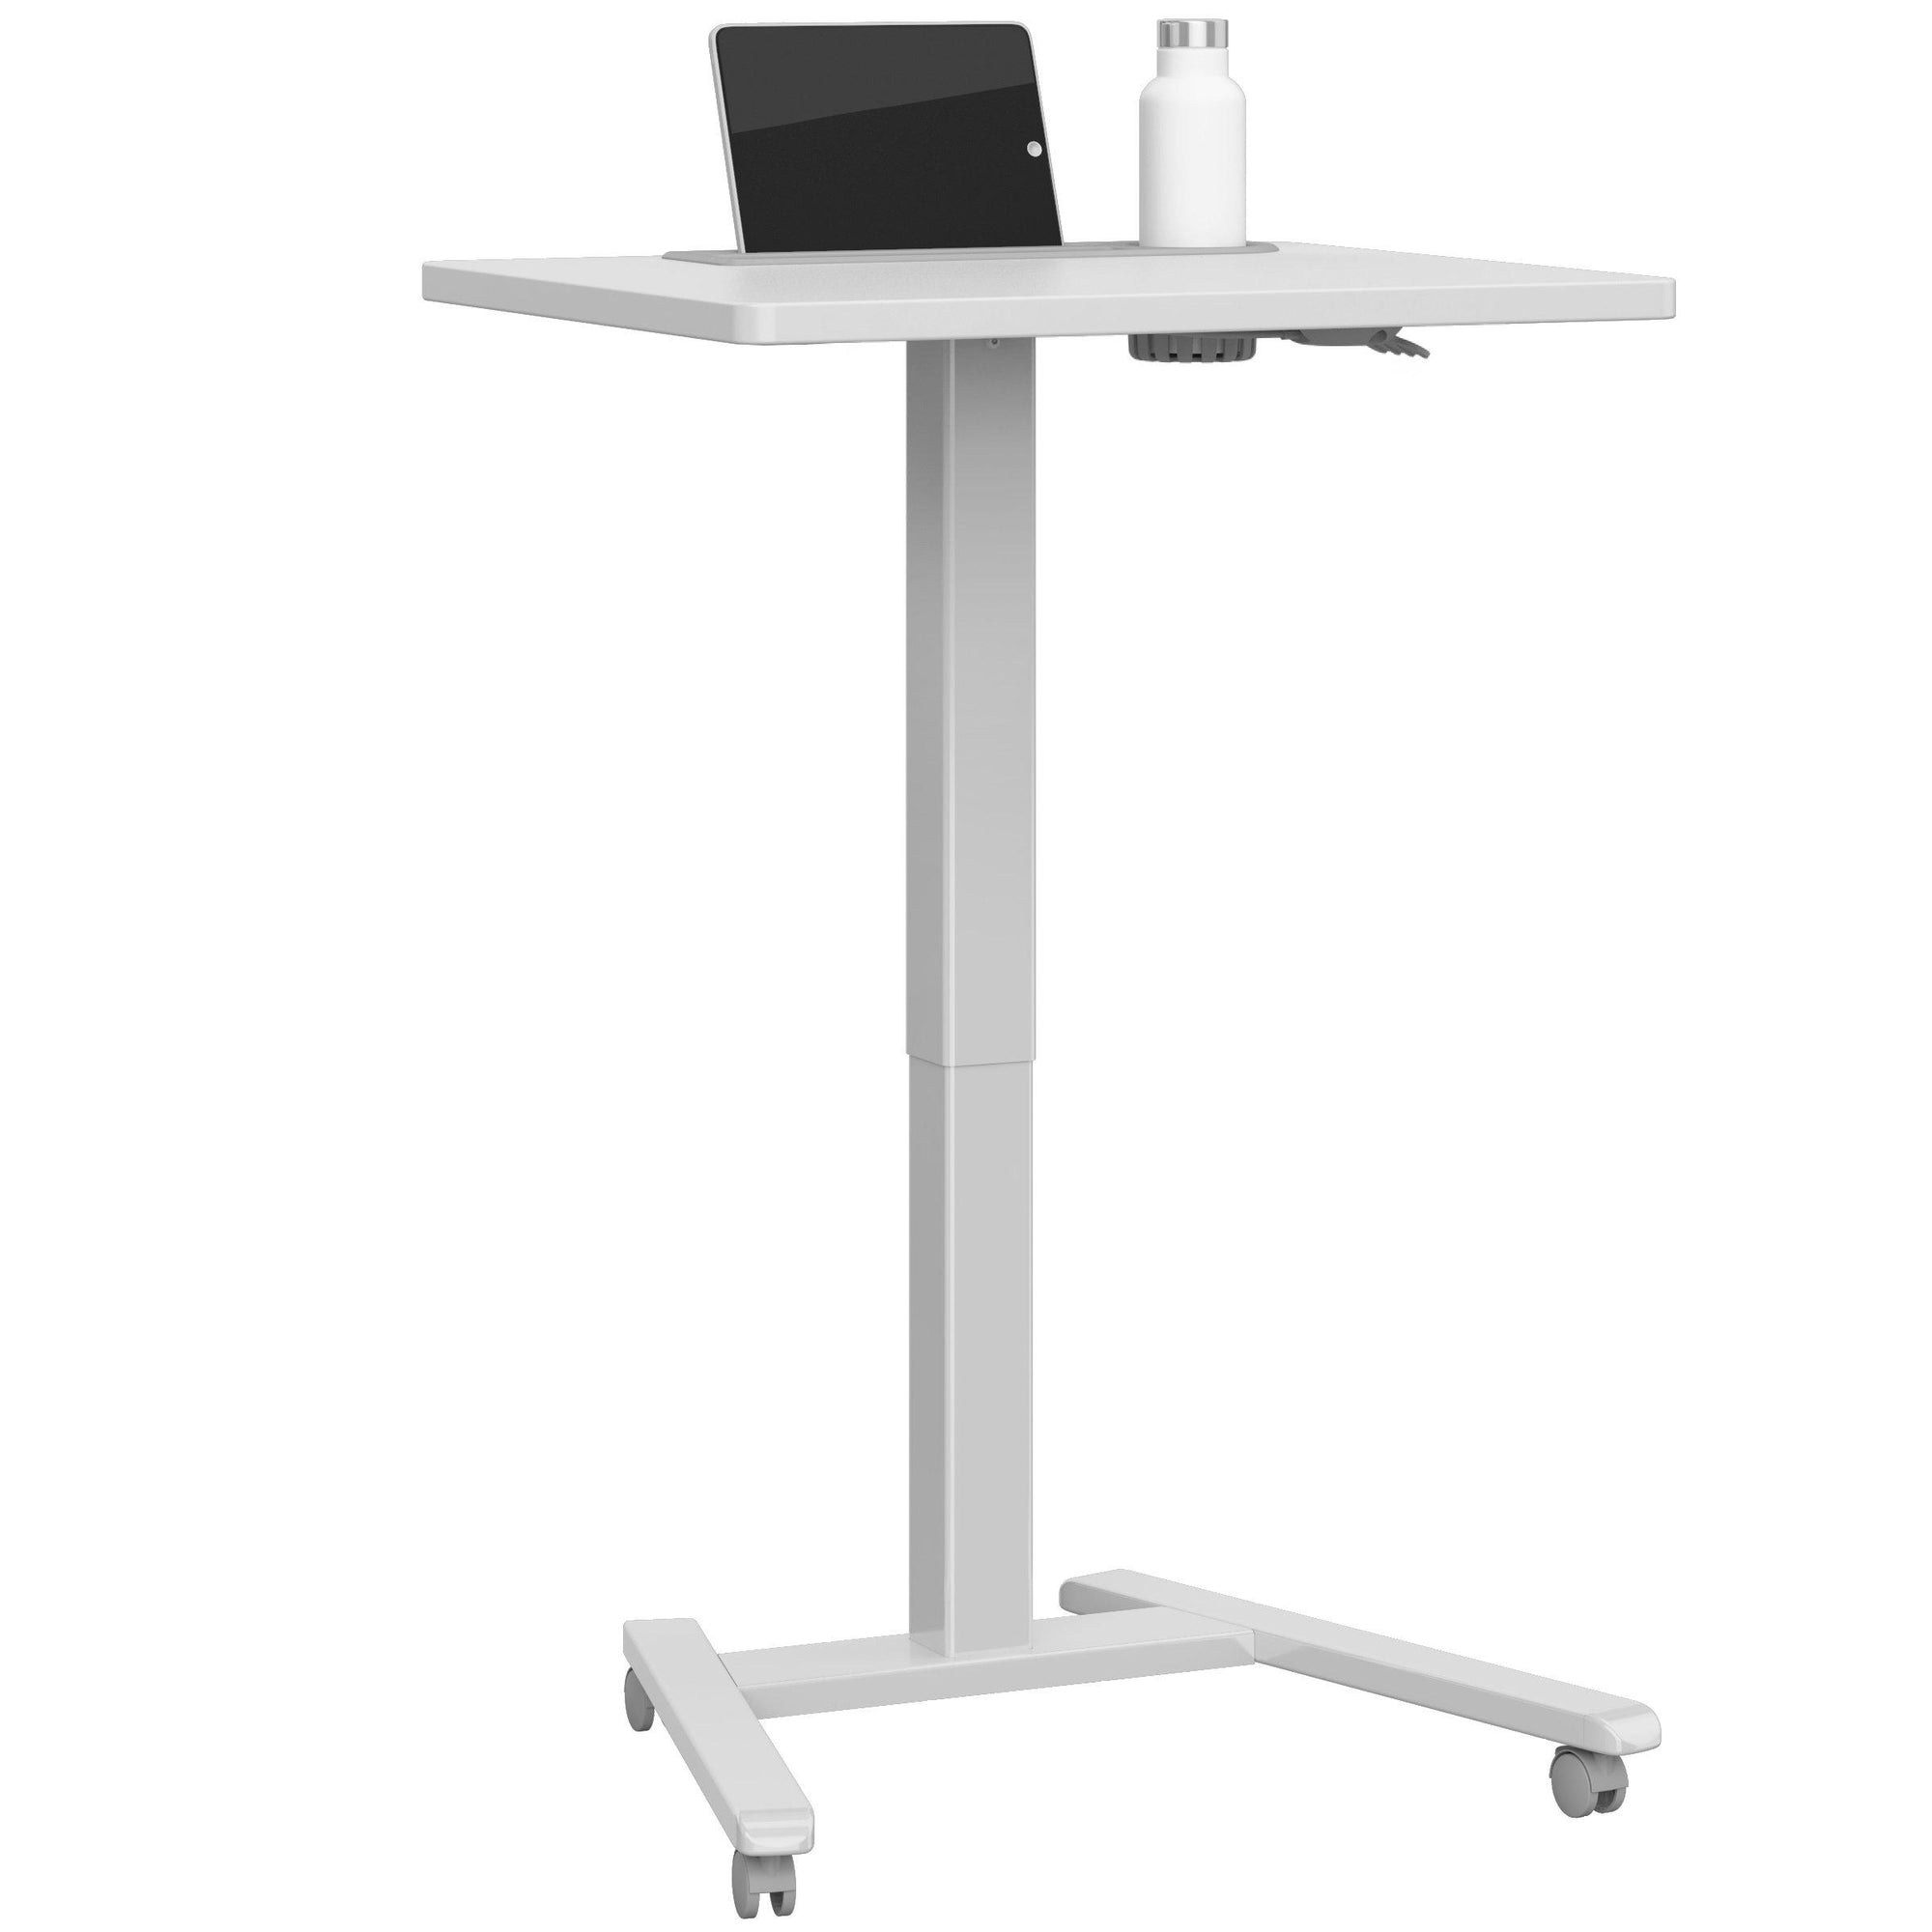 Fuzion Sit-to-Stand Mobile Student/Teacher Desk, Fog Gray Formica Laminate with Platinum Frame